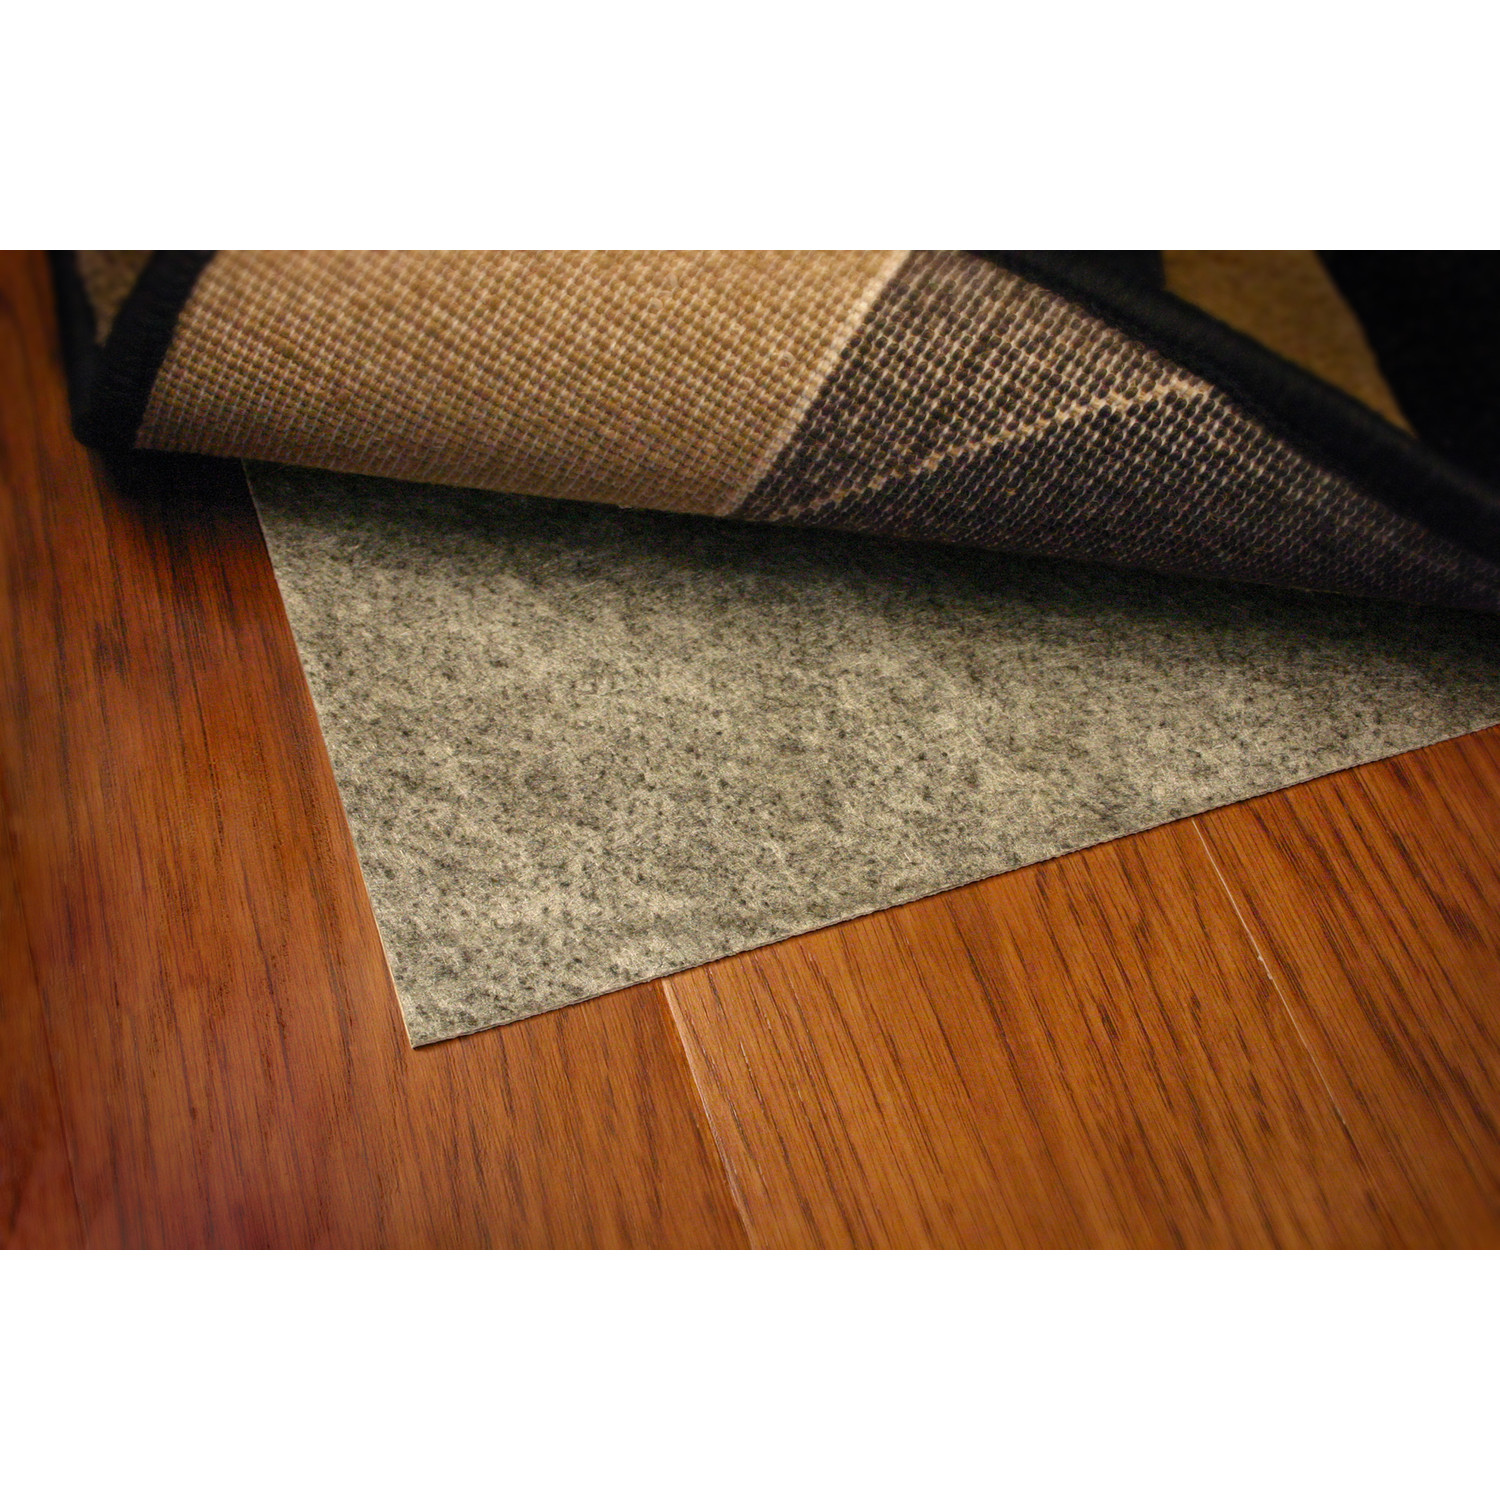 3 recommendations for best rug pad for hardwood floors | homesfeed